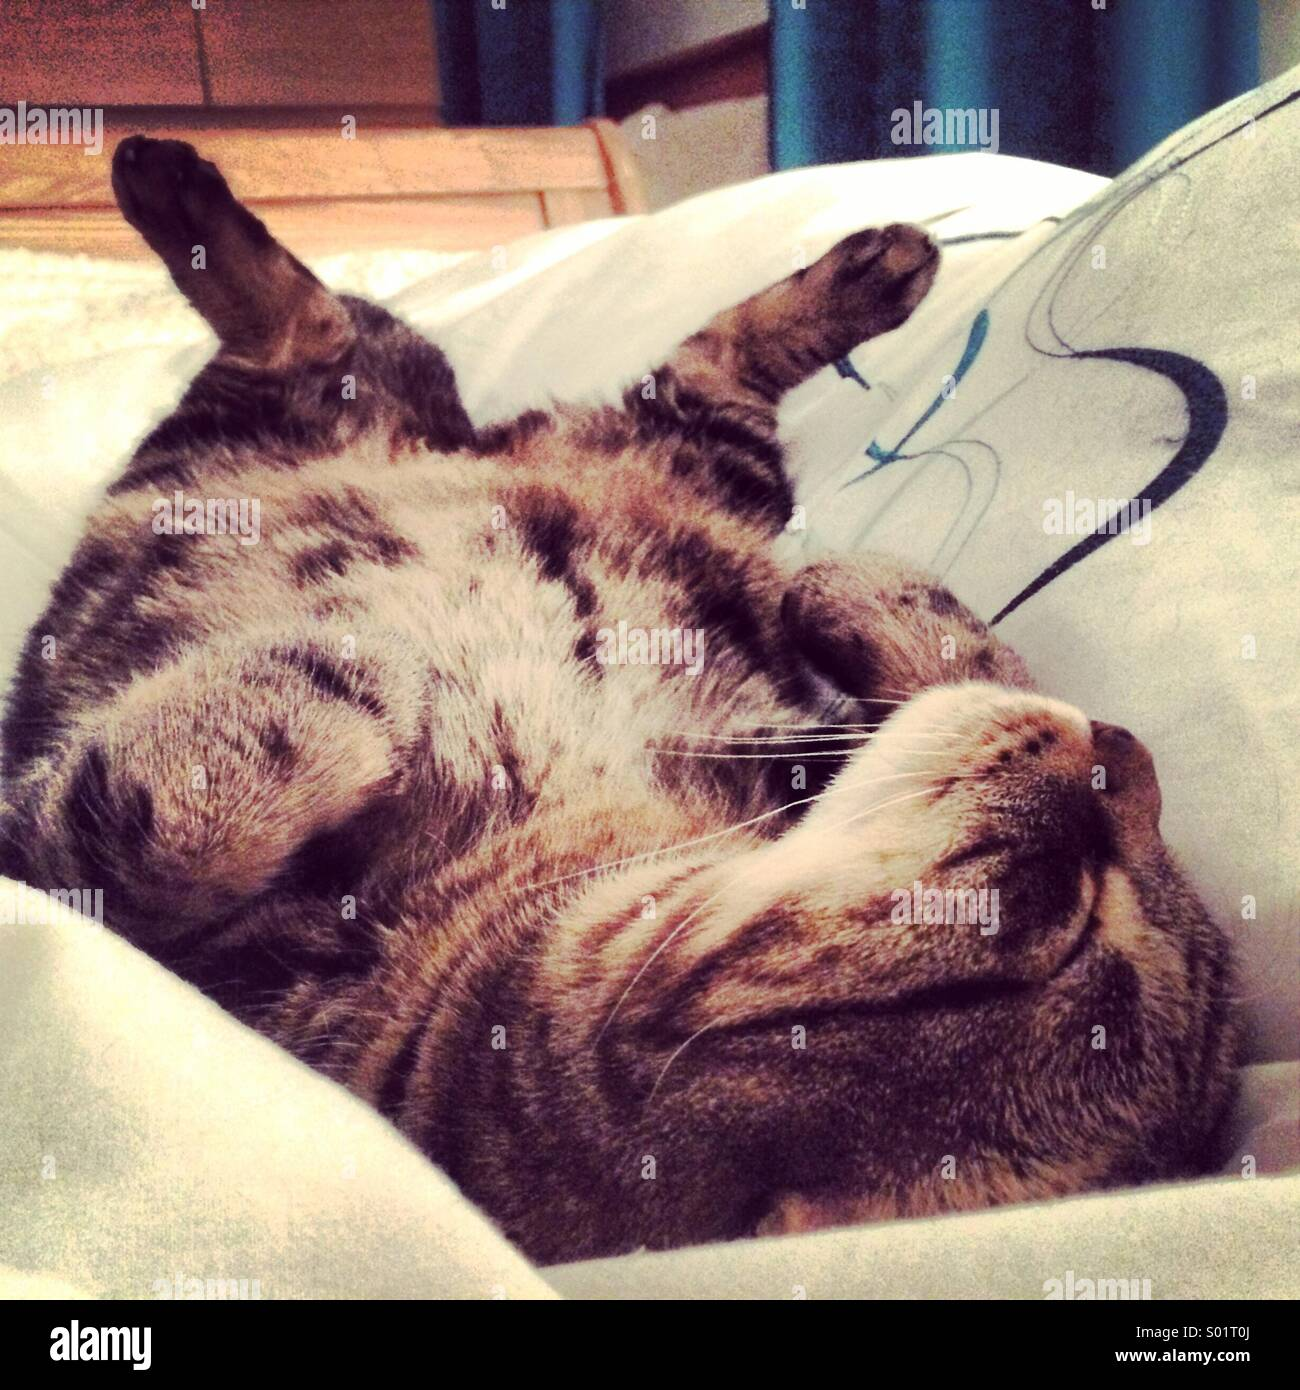 Tabby cat sleeping on his back - Stock Image